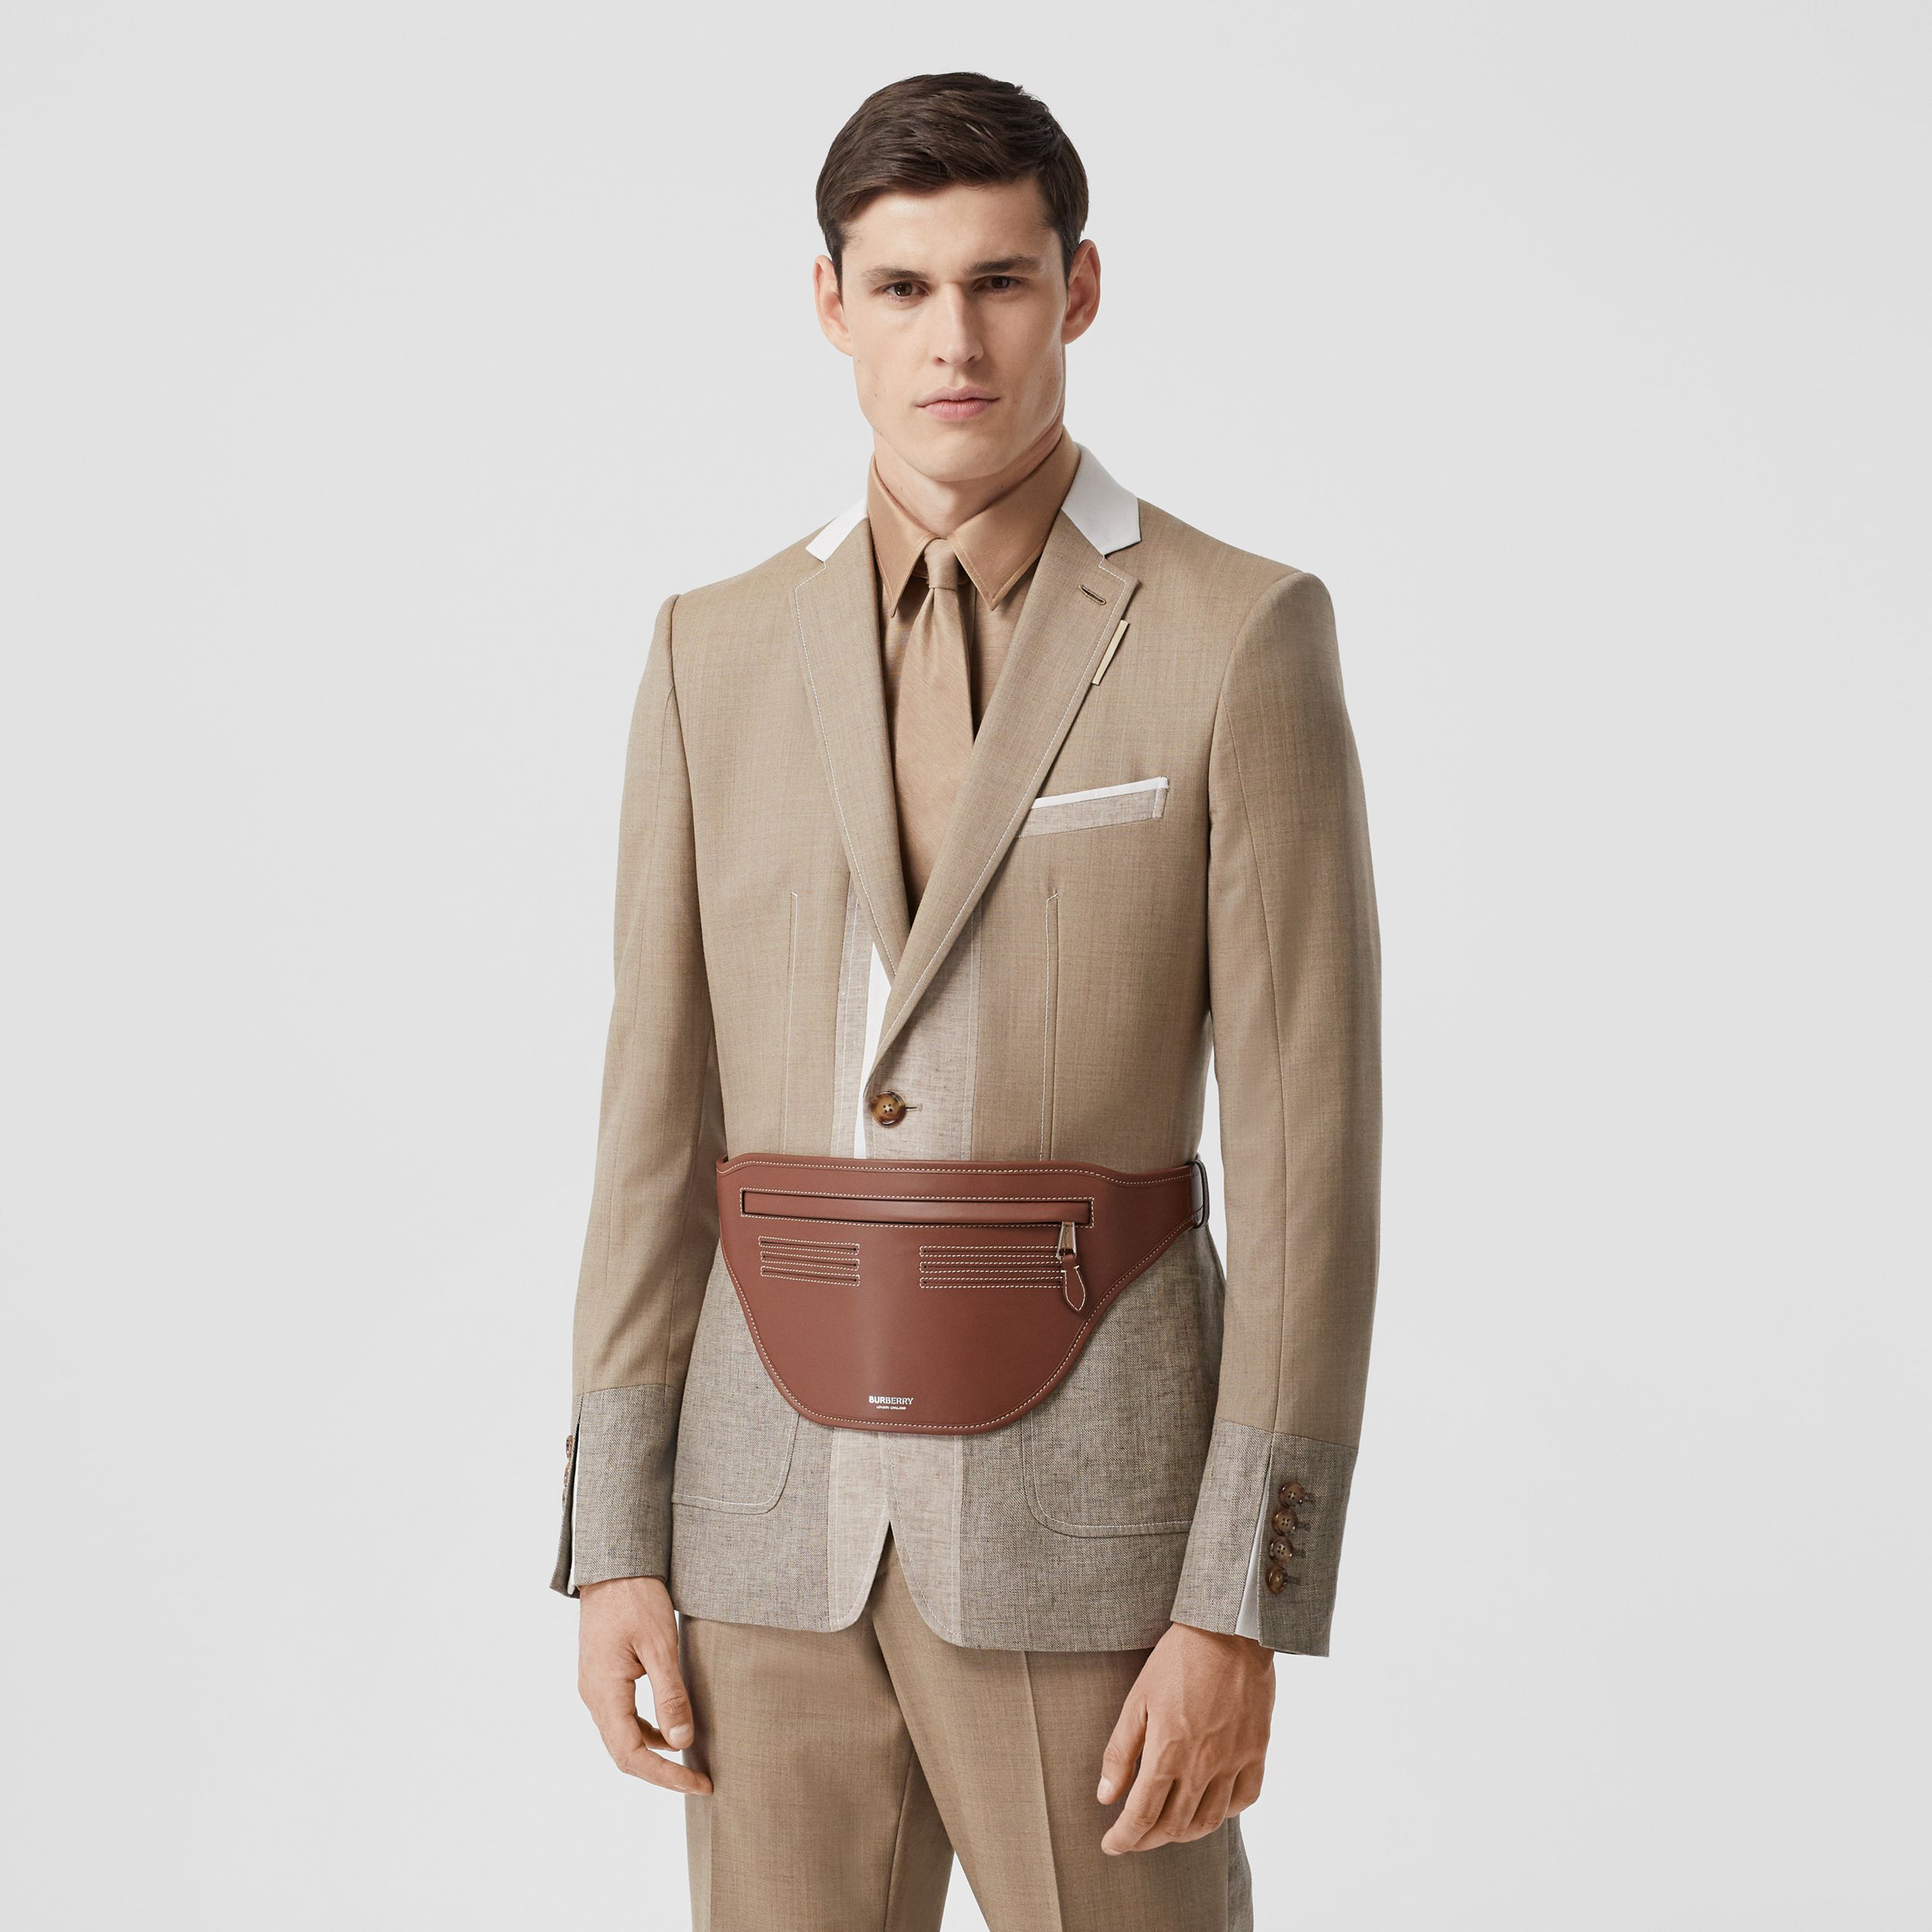 Topstitched Leather Brummell Bum Bag in Tan | Burberry - 4